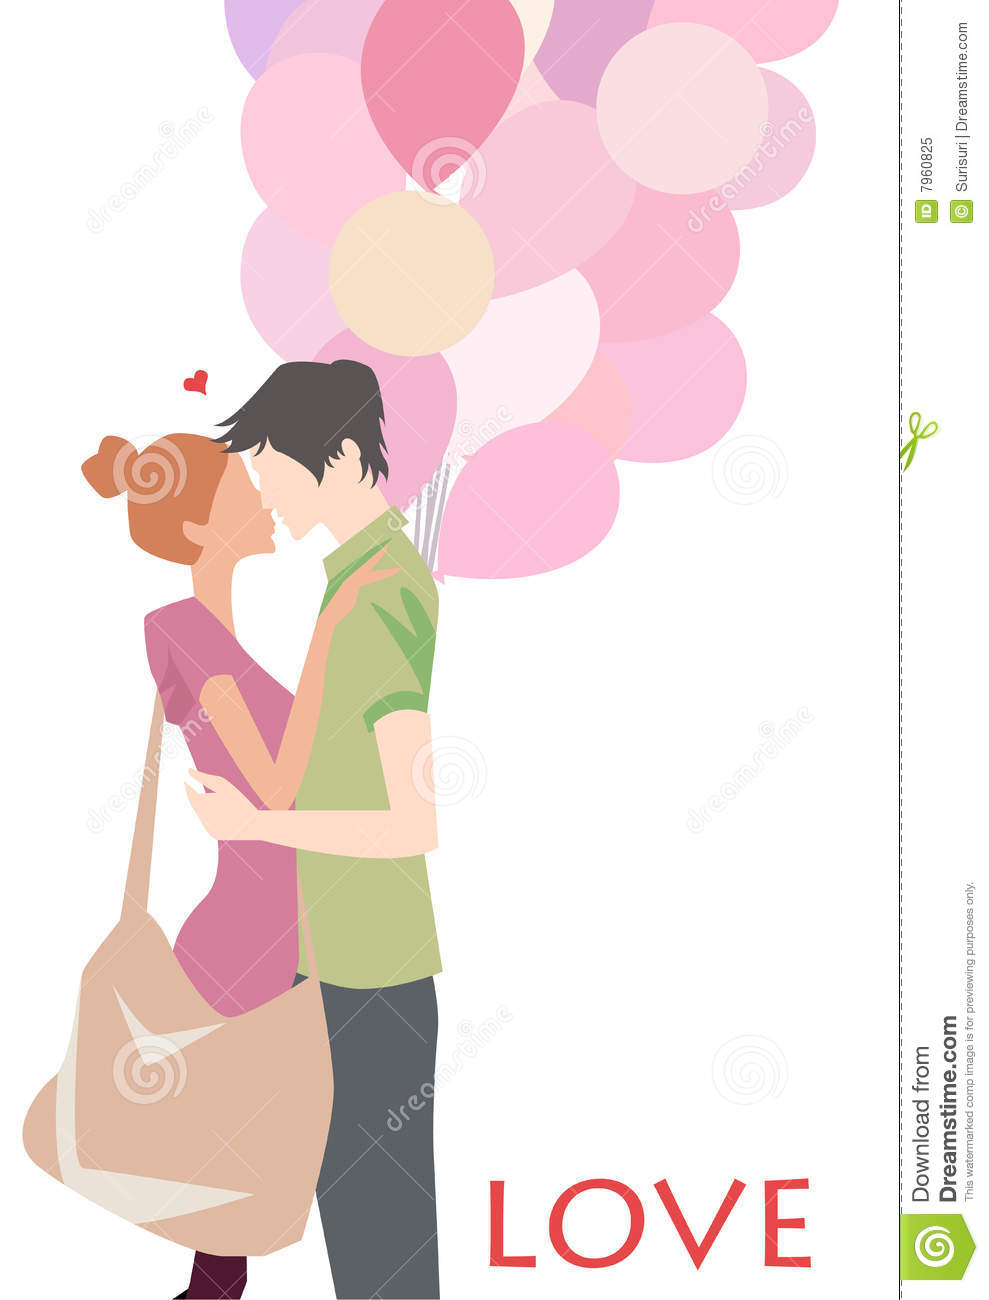 boy meets girl and fall in love Read boy meets girl (chapter one) from the story boy meets girl (not your average love story) by foreverlucky13 with 2,660 reads foreverlucky13, average, stor.